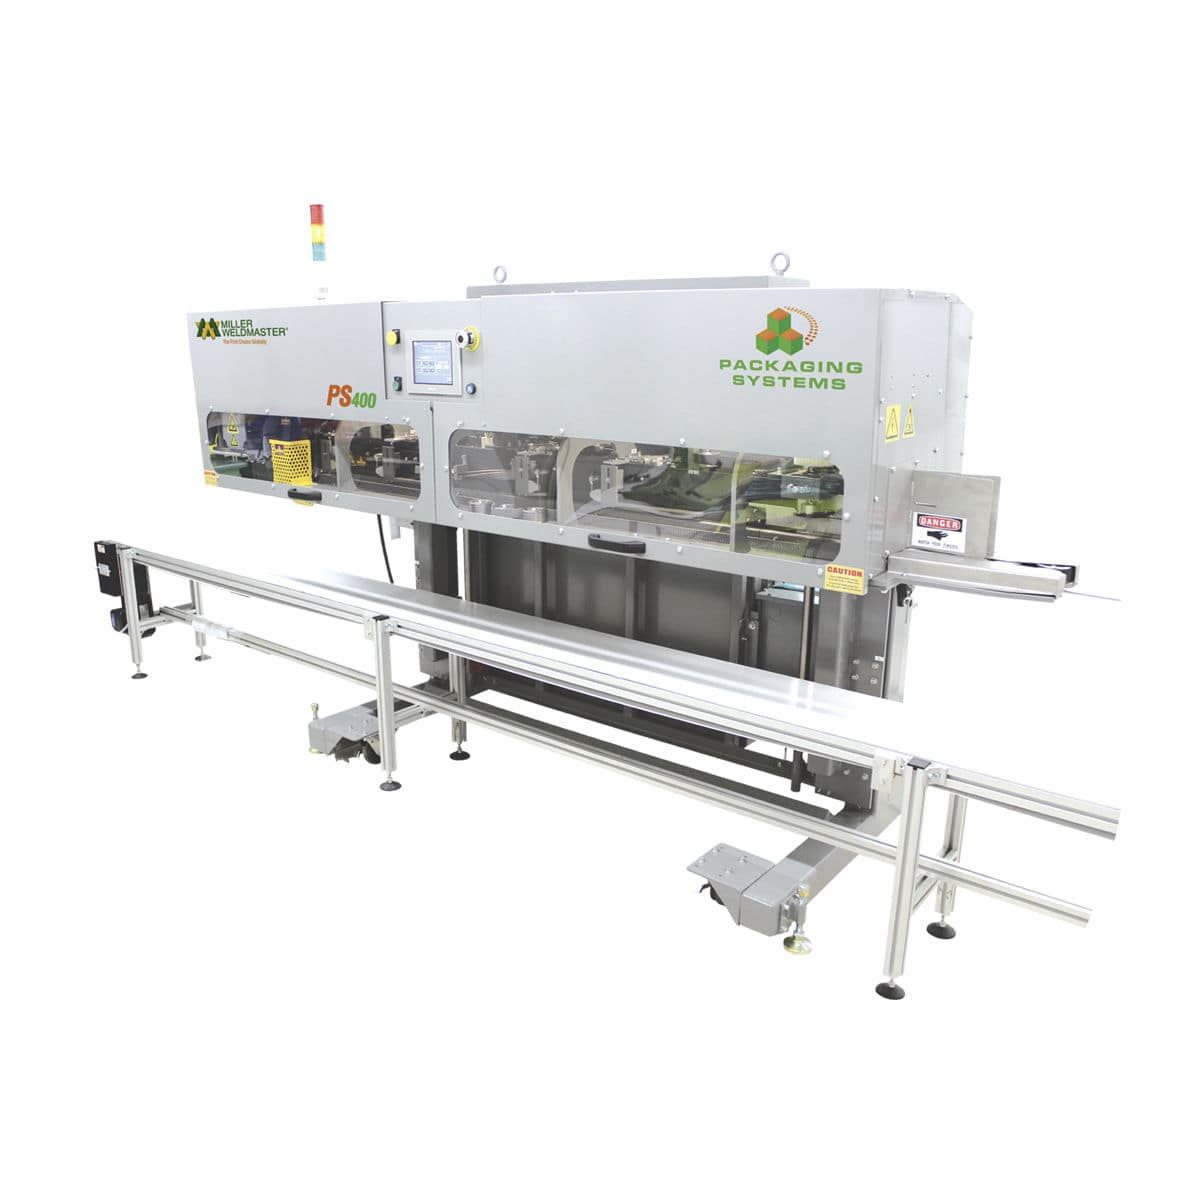 PS 400 - Bag Closing System for an Efficient and Streamlined Sealing Process